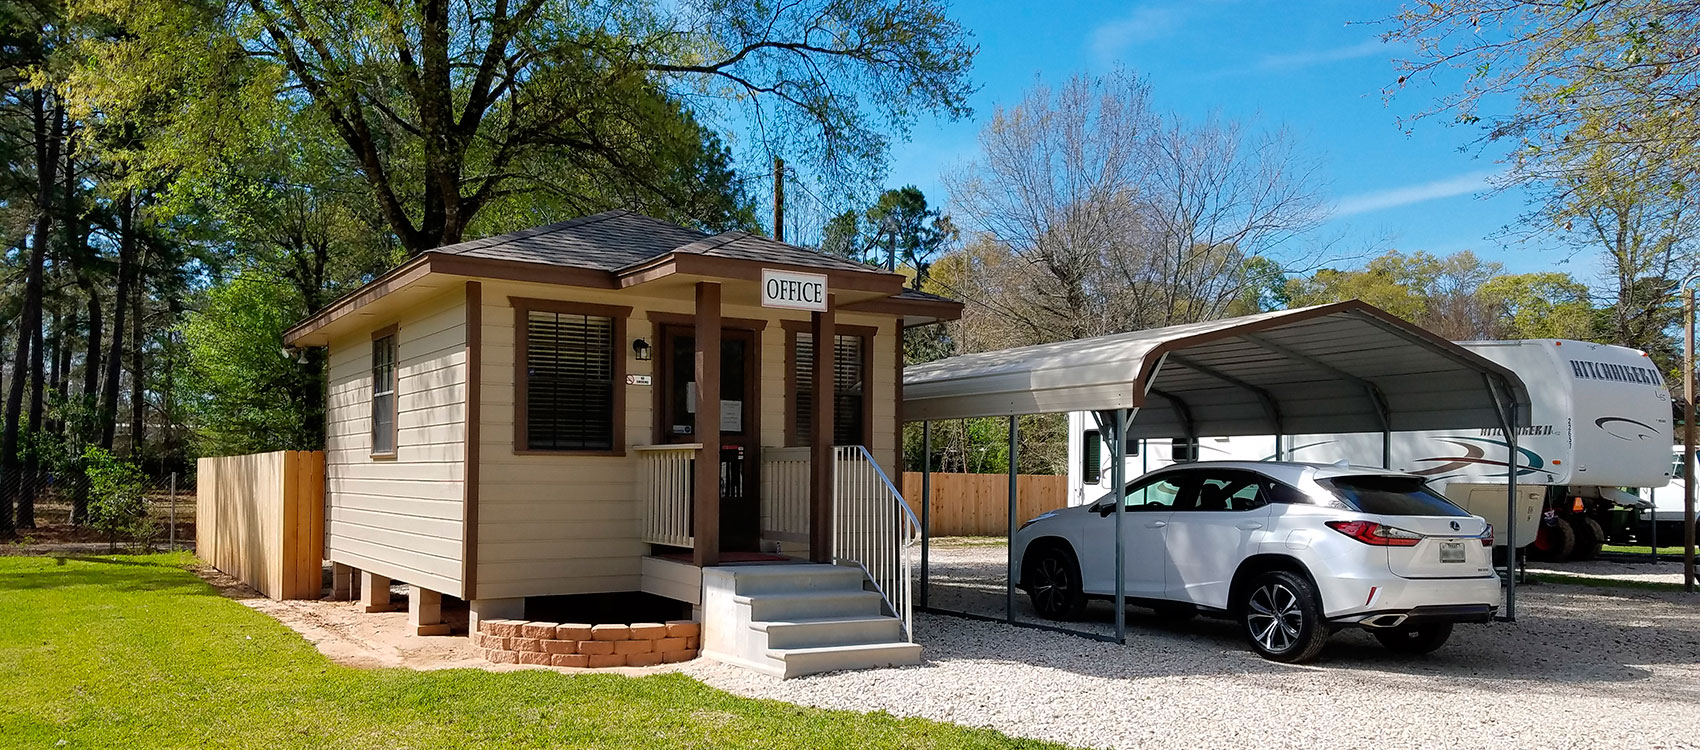 Rv Park In New Caney Tx Near Houston Great Location